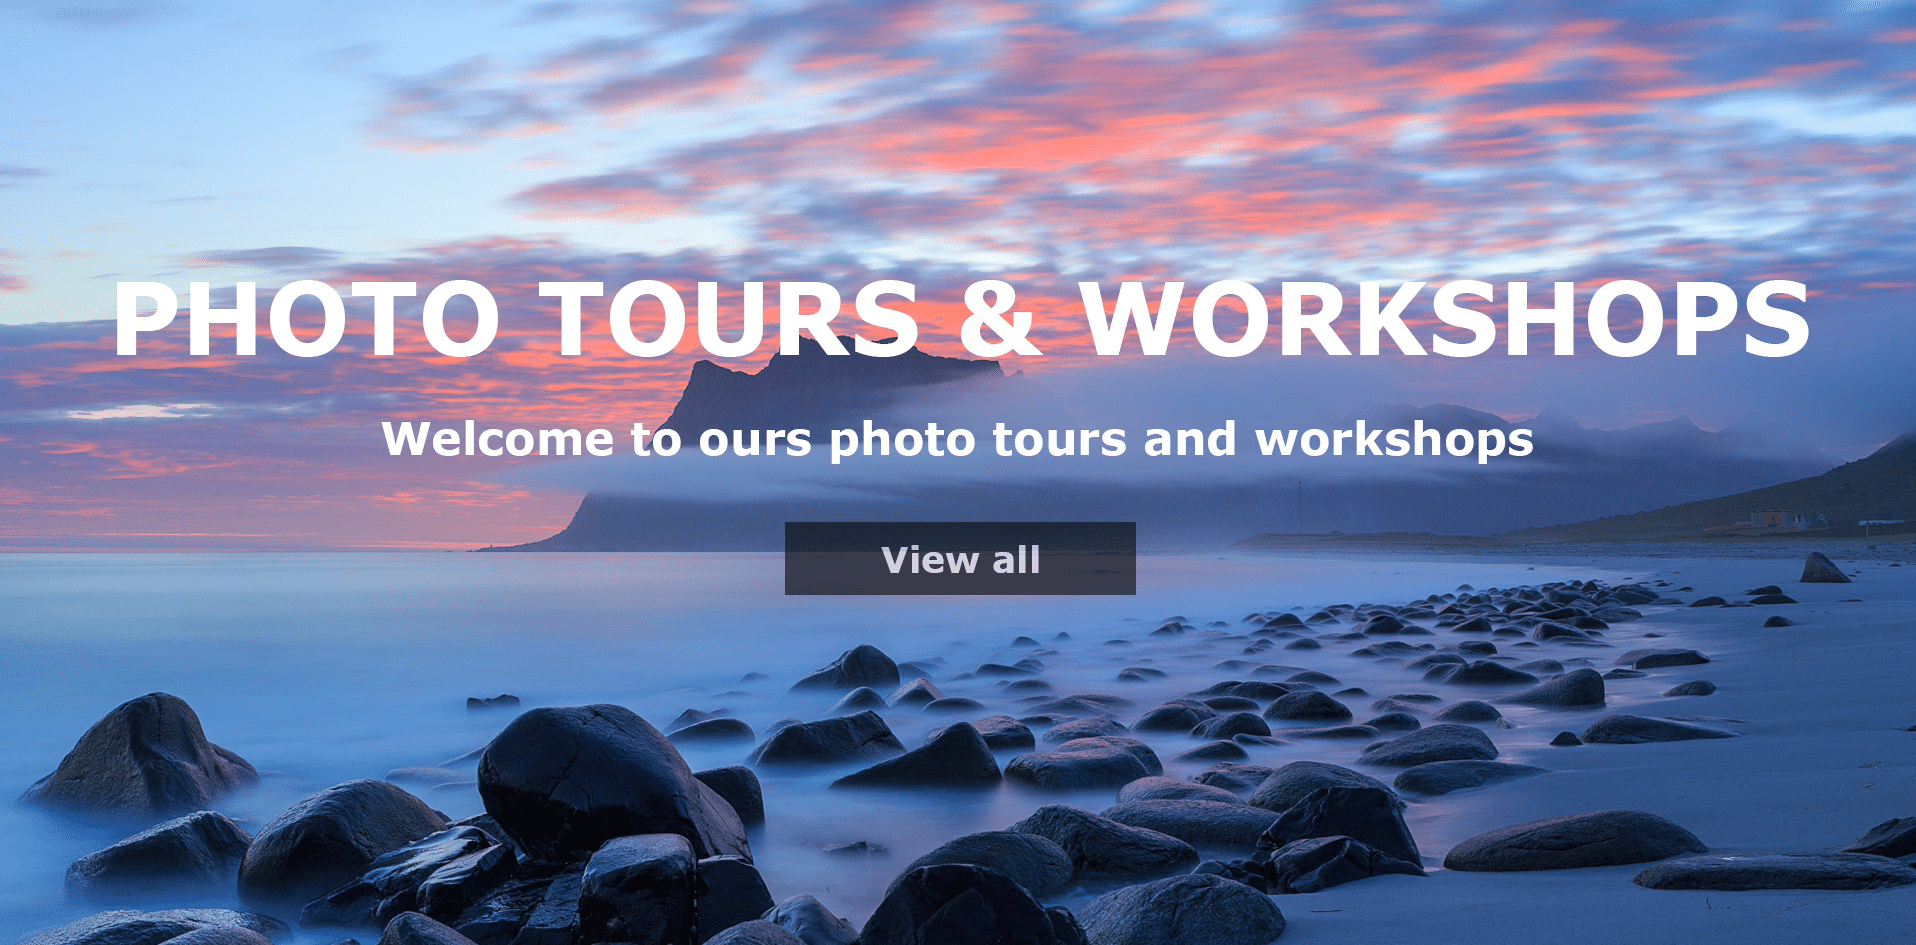 photo tours and workshops_1